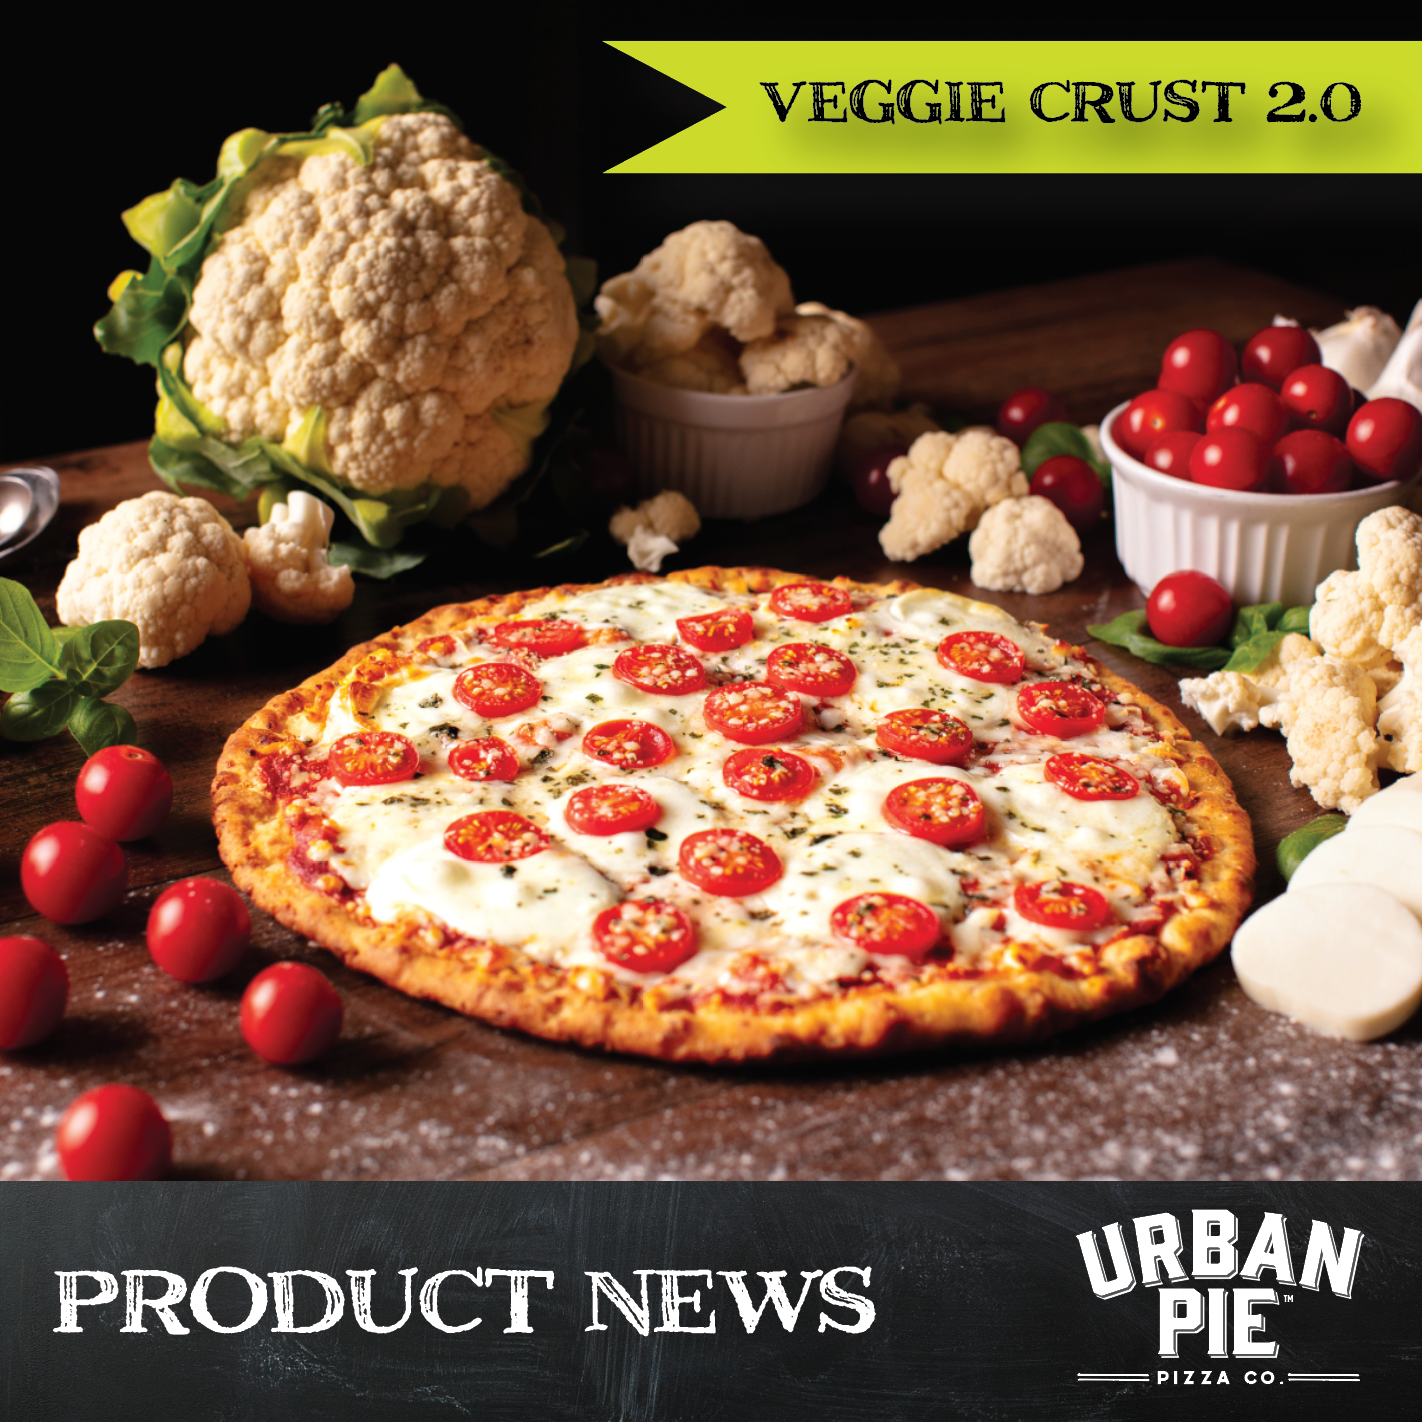 The Next Big Thing in Veggie Crust Pizza Has Arrived